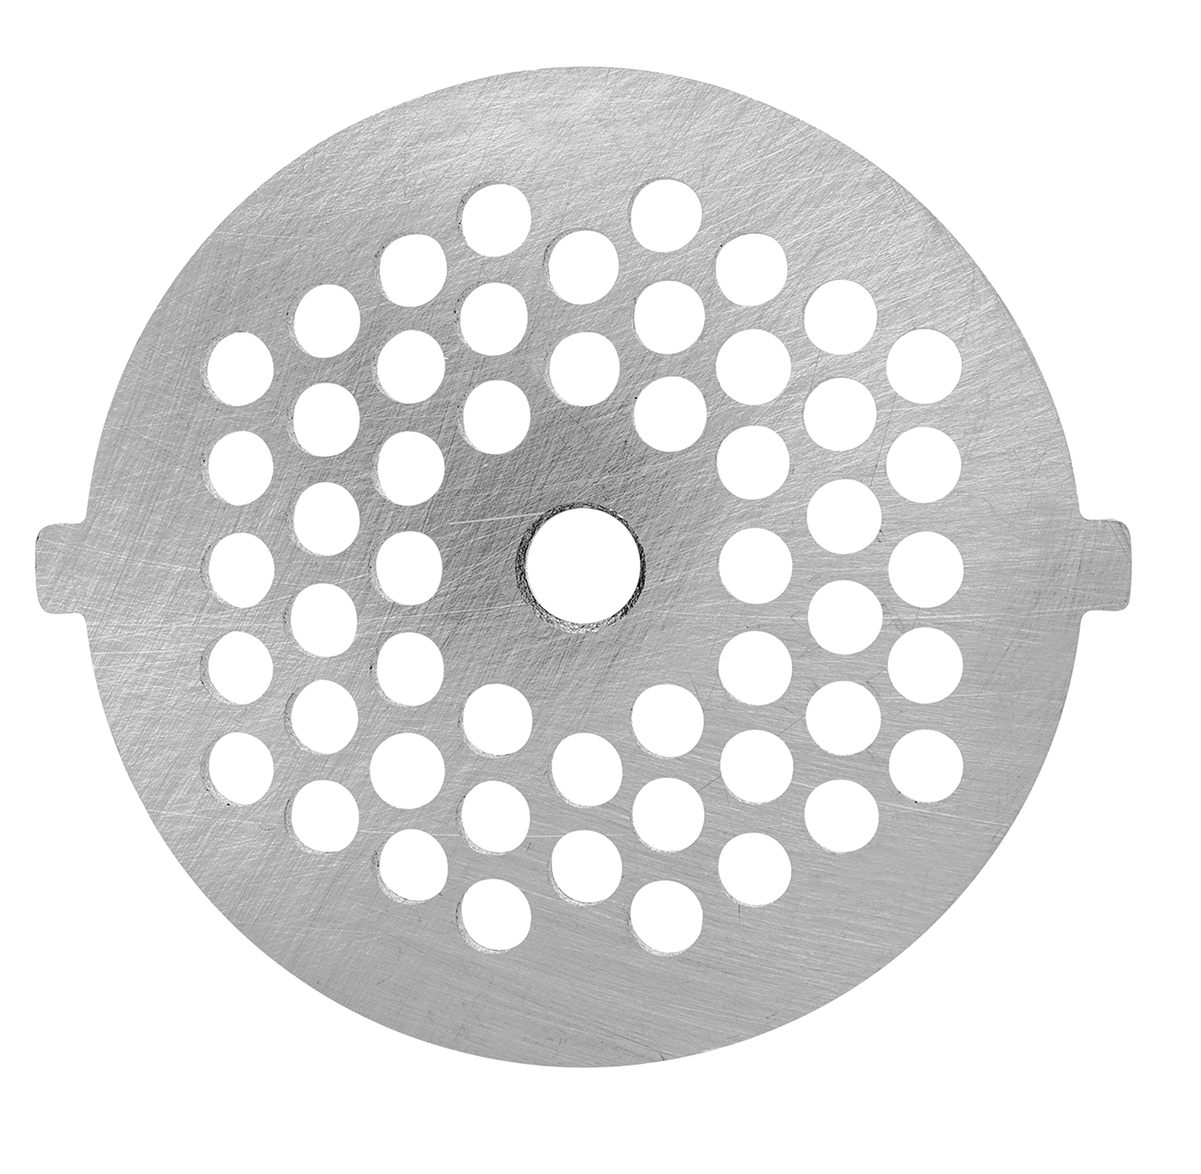 Luvele, 5mm Stainless Steel Cutting Plate for the Luvele Meat grinder,Meat Grinder